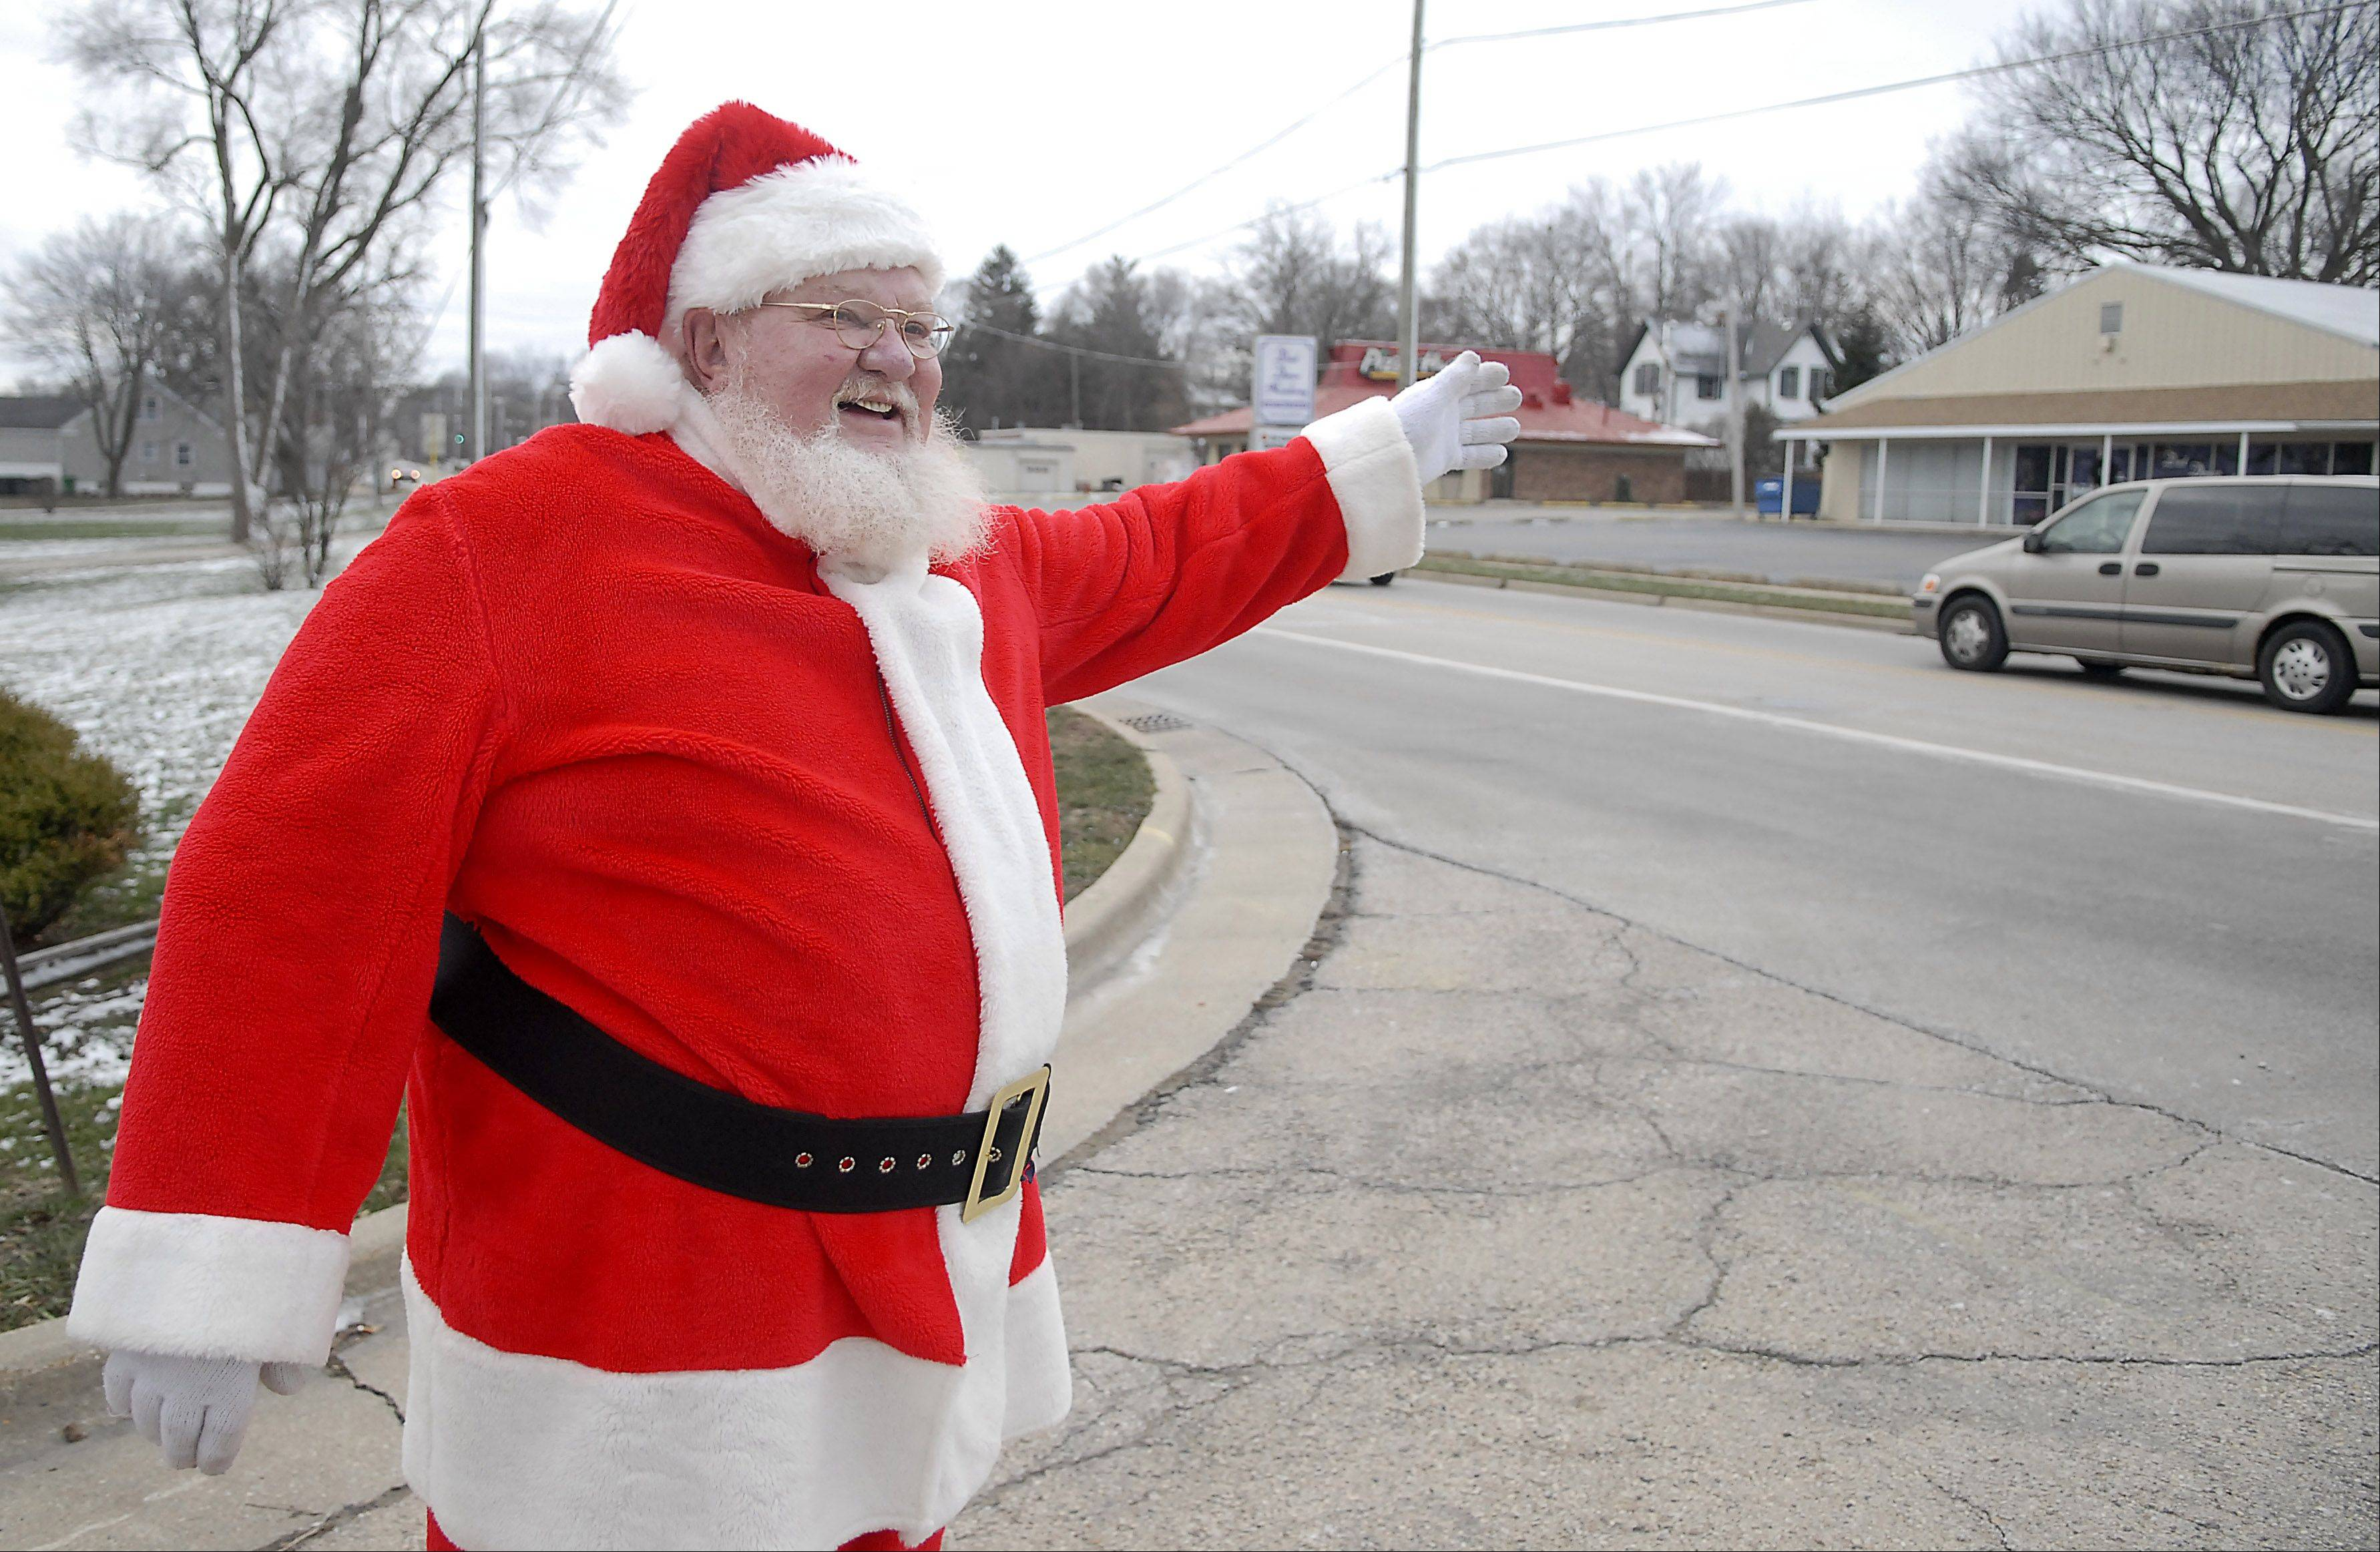 Richard Ahrens, of East Dundee, waves to travelers on the corner of Rt. 31 and Stone Street in South Elgin on Christmas Day. 20 years ago, Ahrens lived in a home at this corner and found himself bored after his children moved away, so he decided to dress up like Santa and wave to people on the road. He stands out there no matter rain, sleet, or snow for about three hours. People come to take pictures with him, bring him coffee or just honk and say Merry Christmas.